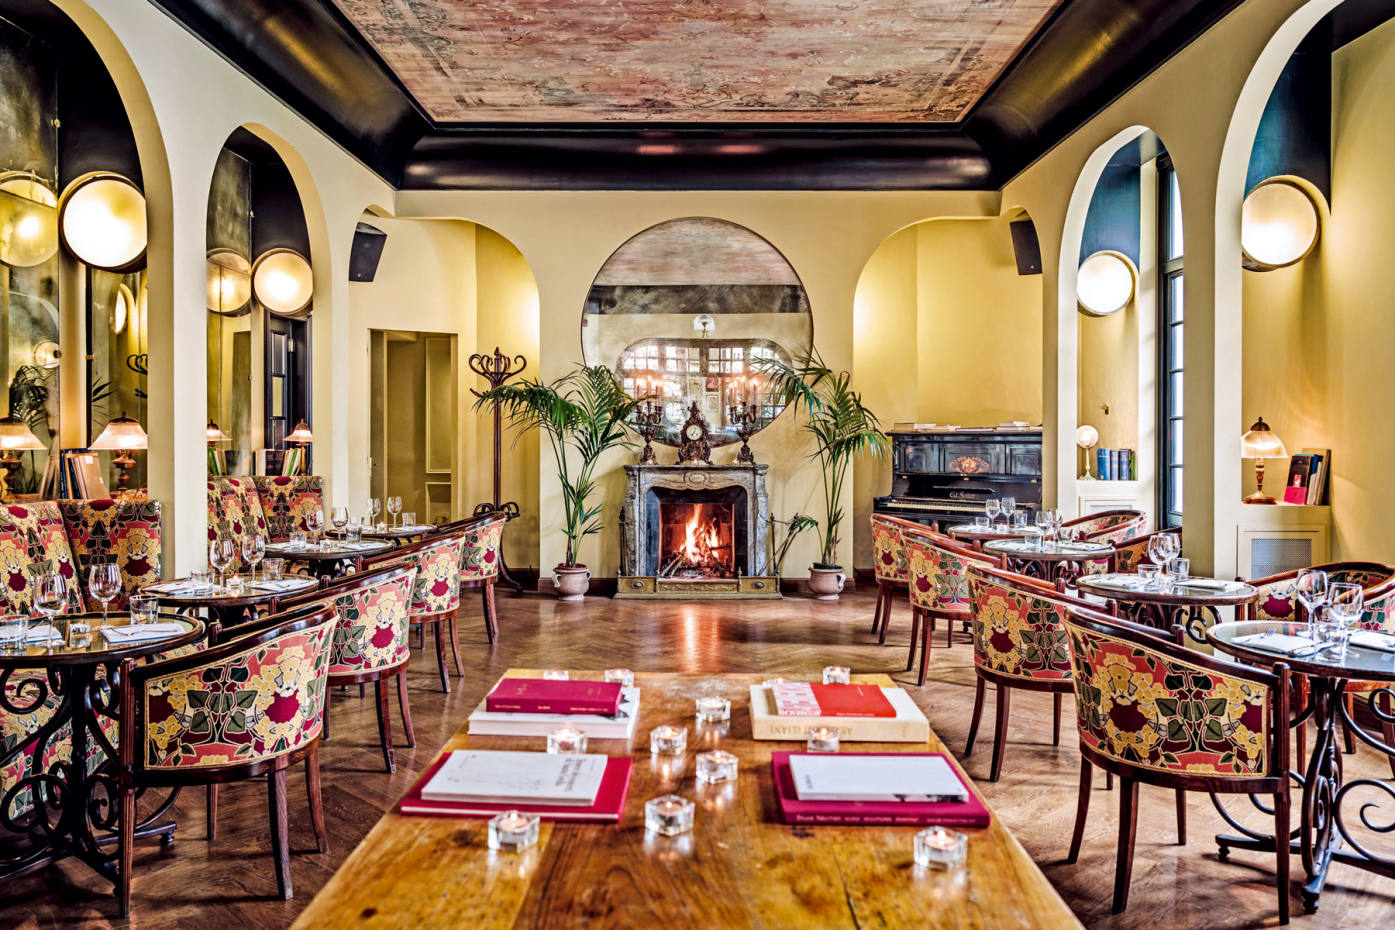 The renovated bar at Hotel Locarno, in Rome, has lost none of its old-world charm